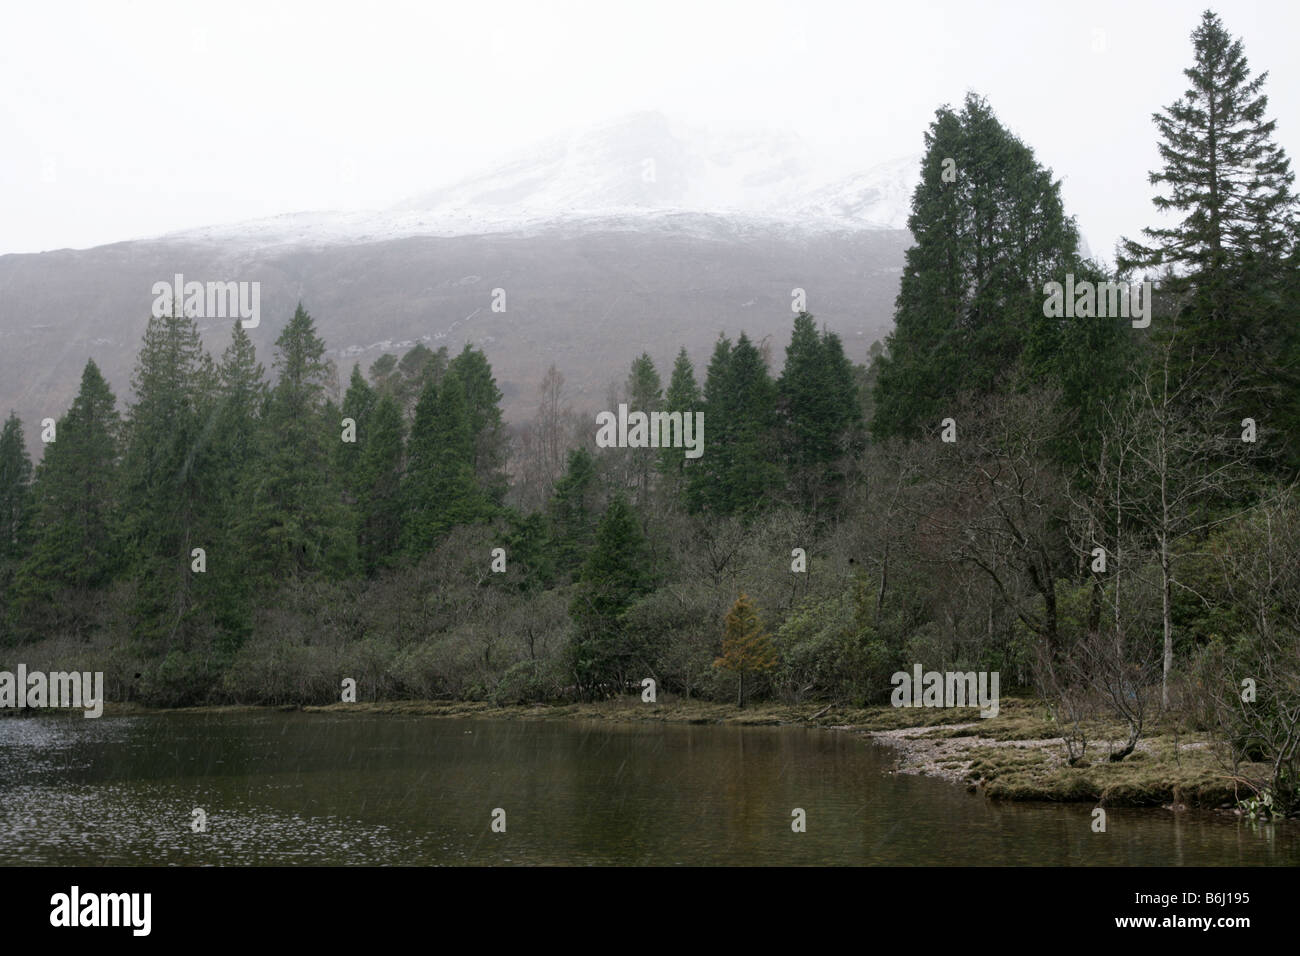 Pinewood trees at Loch Carron in Scotland. - Stock Image